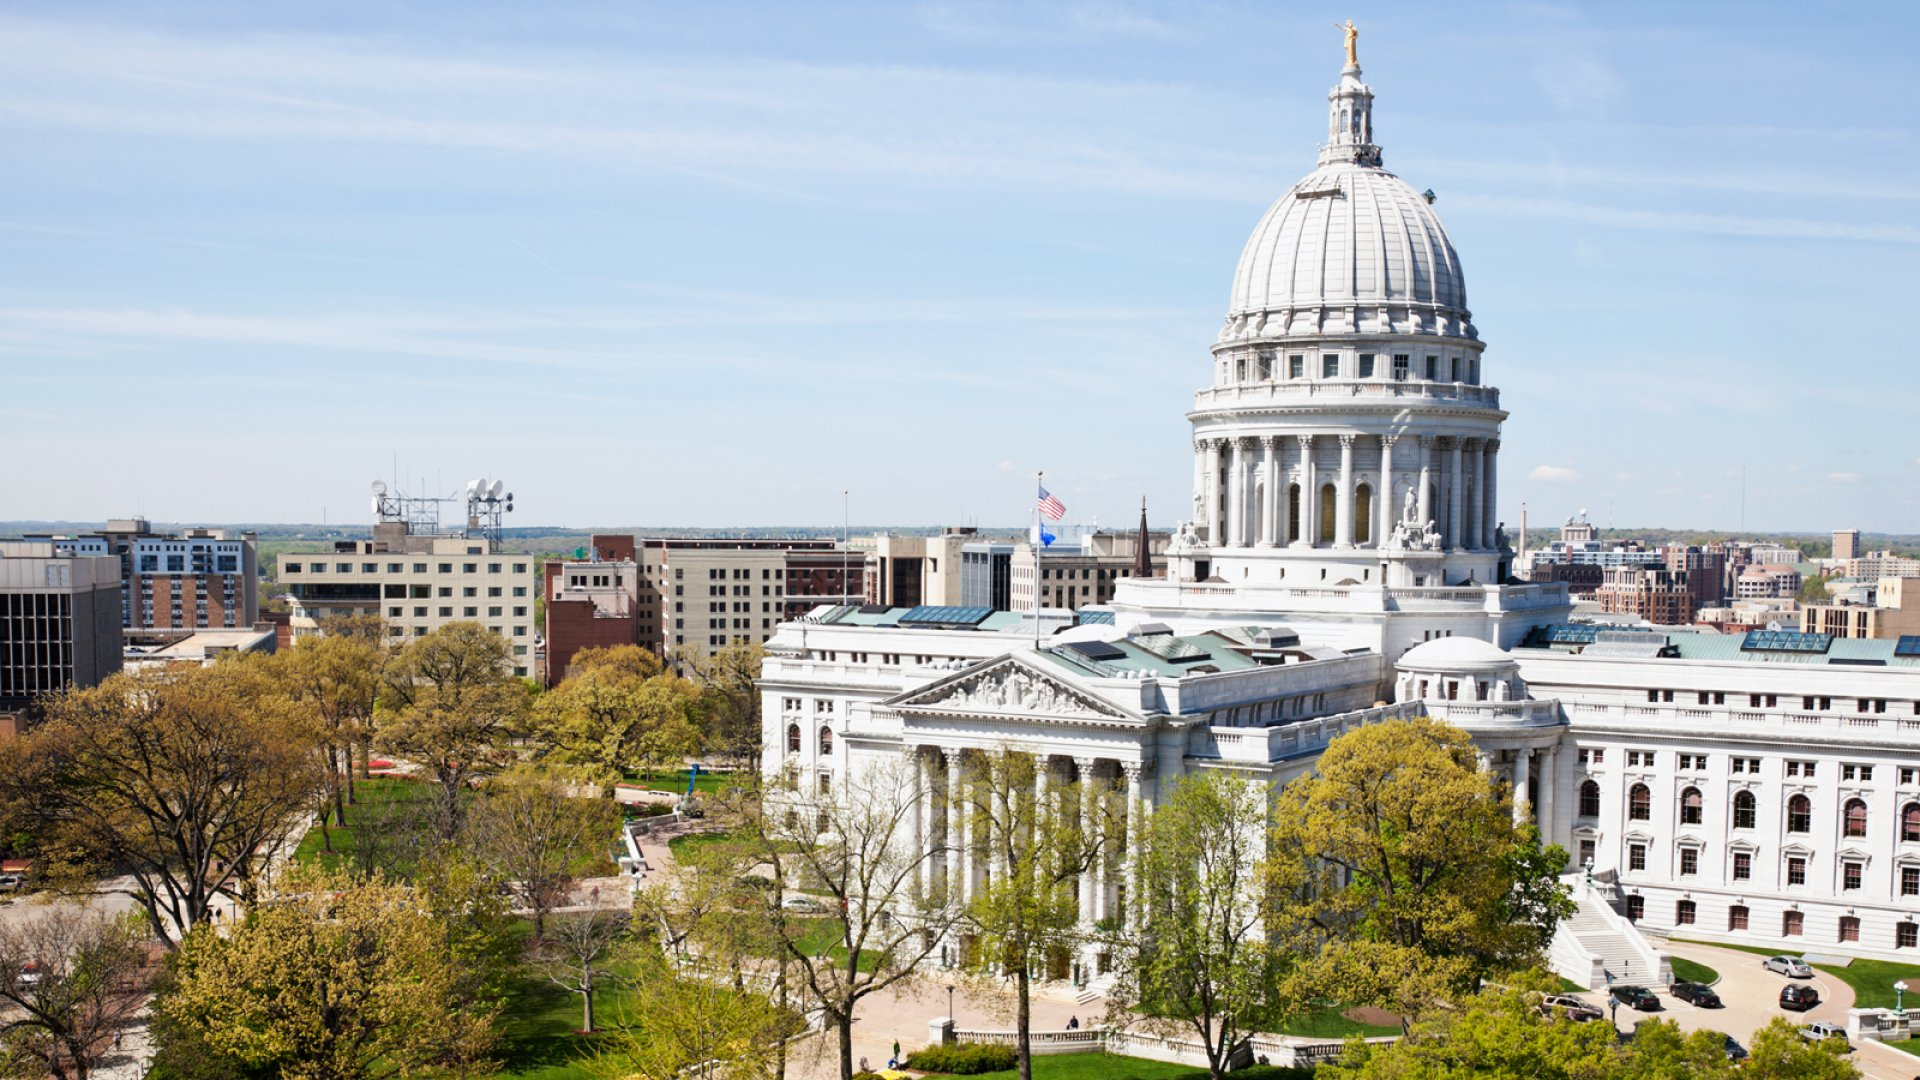 The Wisconsin State Capitol building in Madison